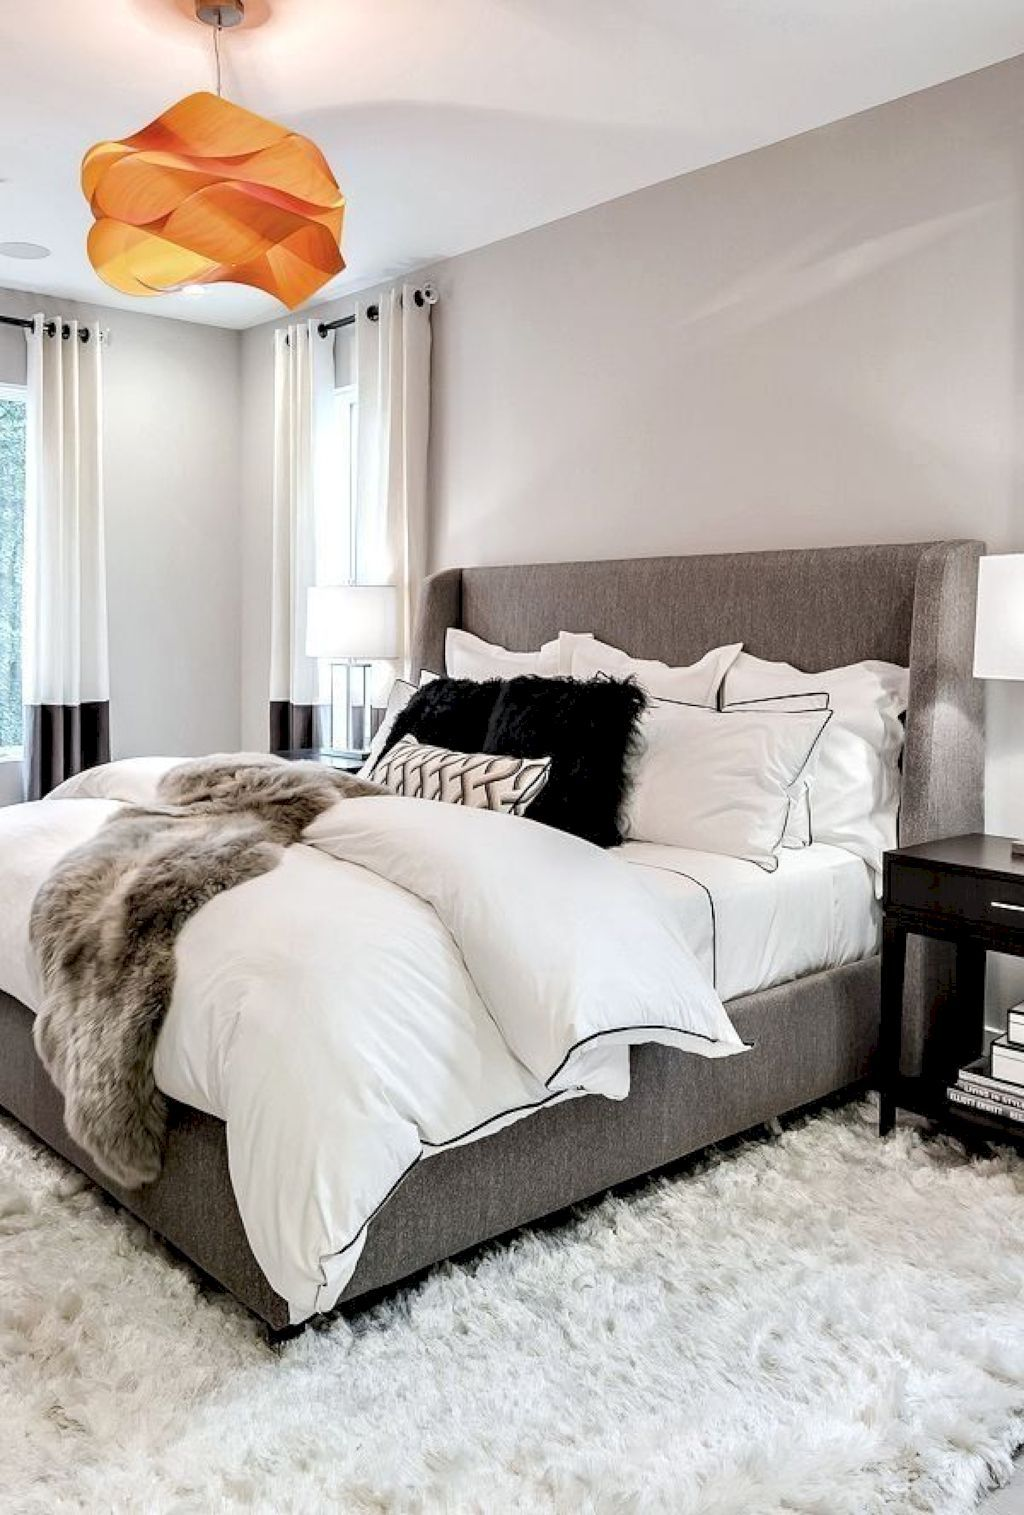 Gorgeous 91 Beautiful Comfy Bedroom Decorating Ideas Https Centeroom Co